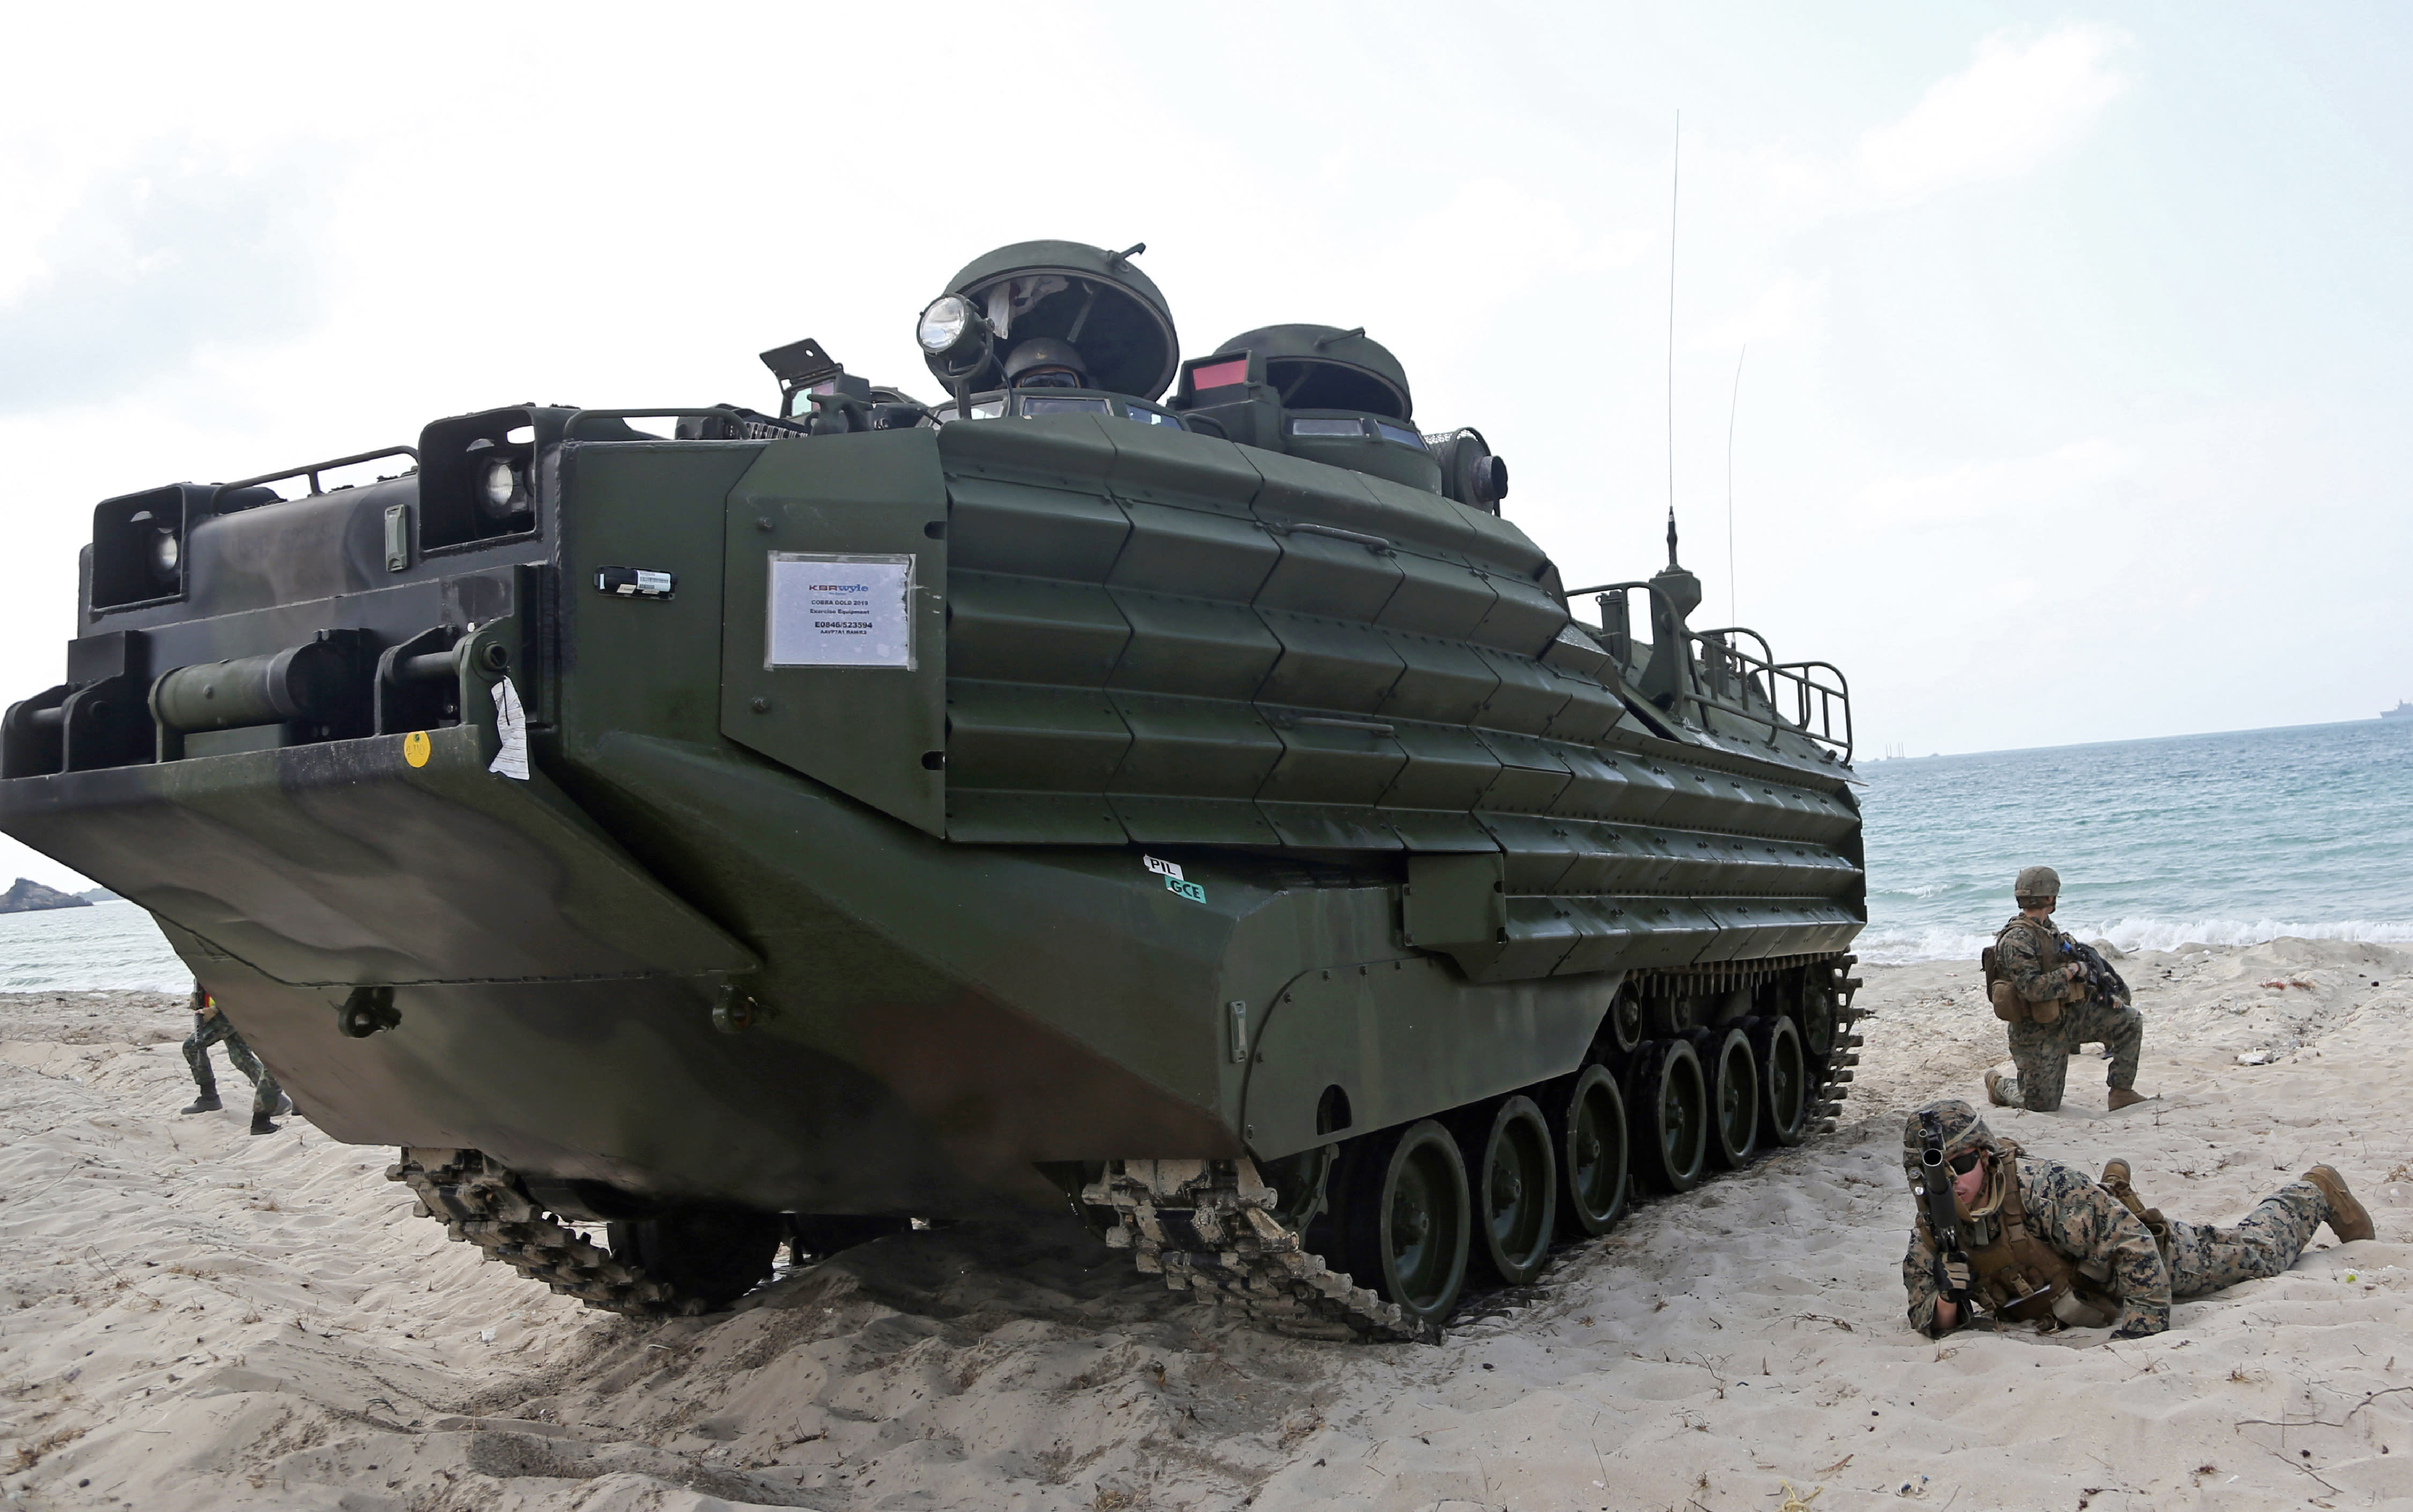 """FILE - U.S. soldiers land with an amphibious assault vehicle (AAV) during a U.S.-Thai joint military exercise titled """"Cobra Gold"""" on Hat Yao beach in Chonburi province, eastern Thailand, Saturday, Feb. 16, 2019. A training accident off the coast of Southern California in an AAV similar to this one has taken the life of one Marine, injured two others and left eight missing Thursday, July 30, 2020. In a Friday morning tweet, the Marines say the accident happened Thursday and search and rescue efforts are underway with support from the Navy and Coast Guard. (AP Photo/Sakchai Lalit)"""